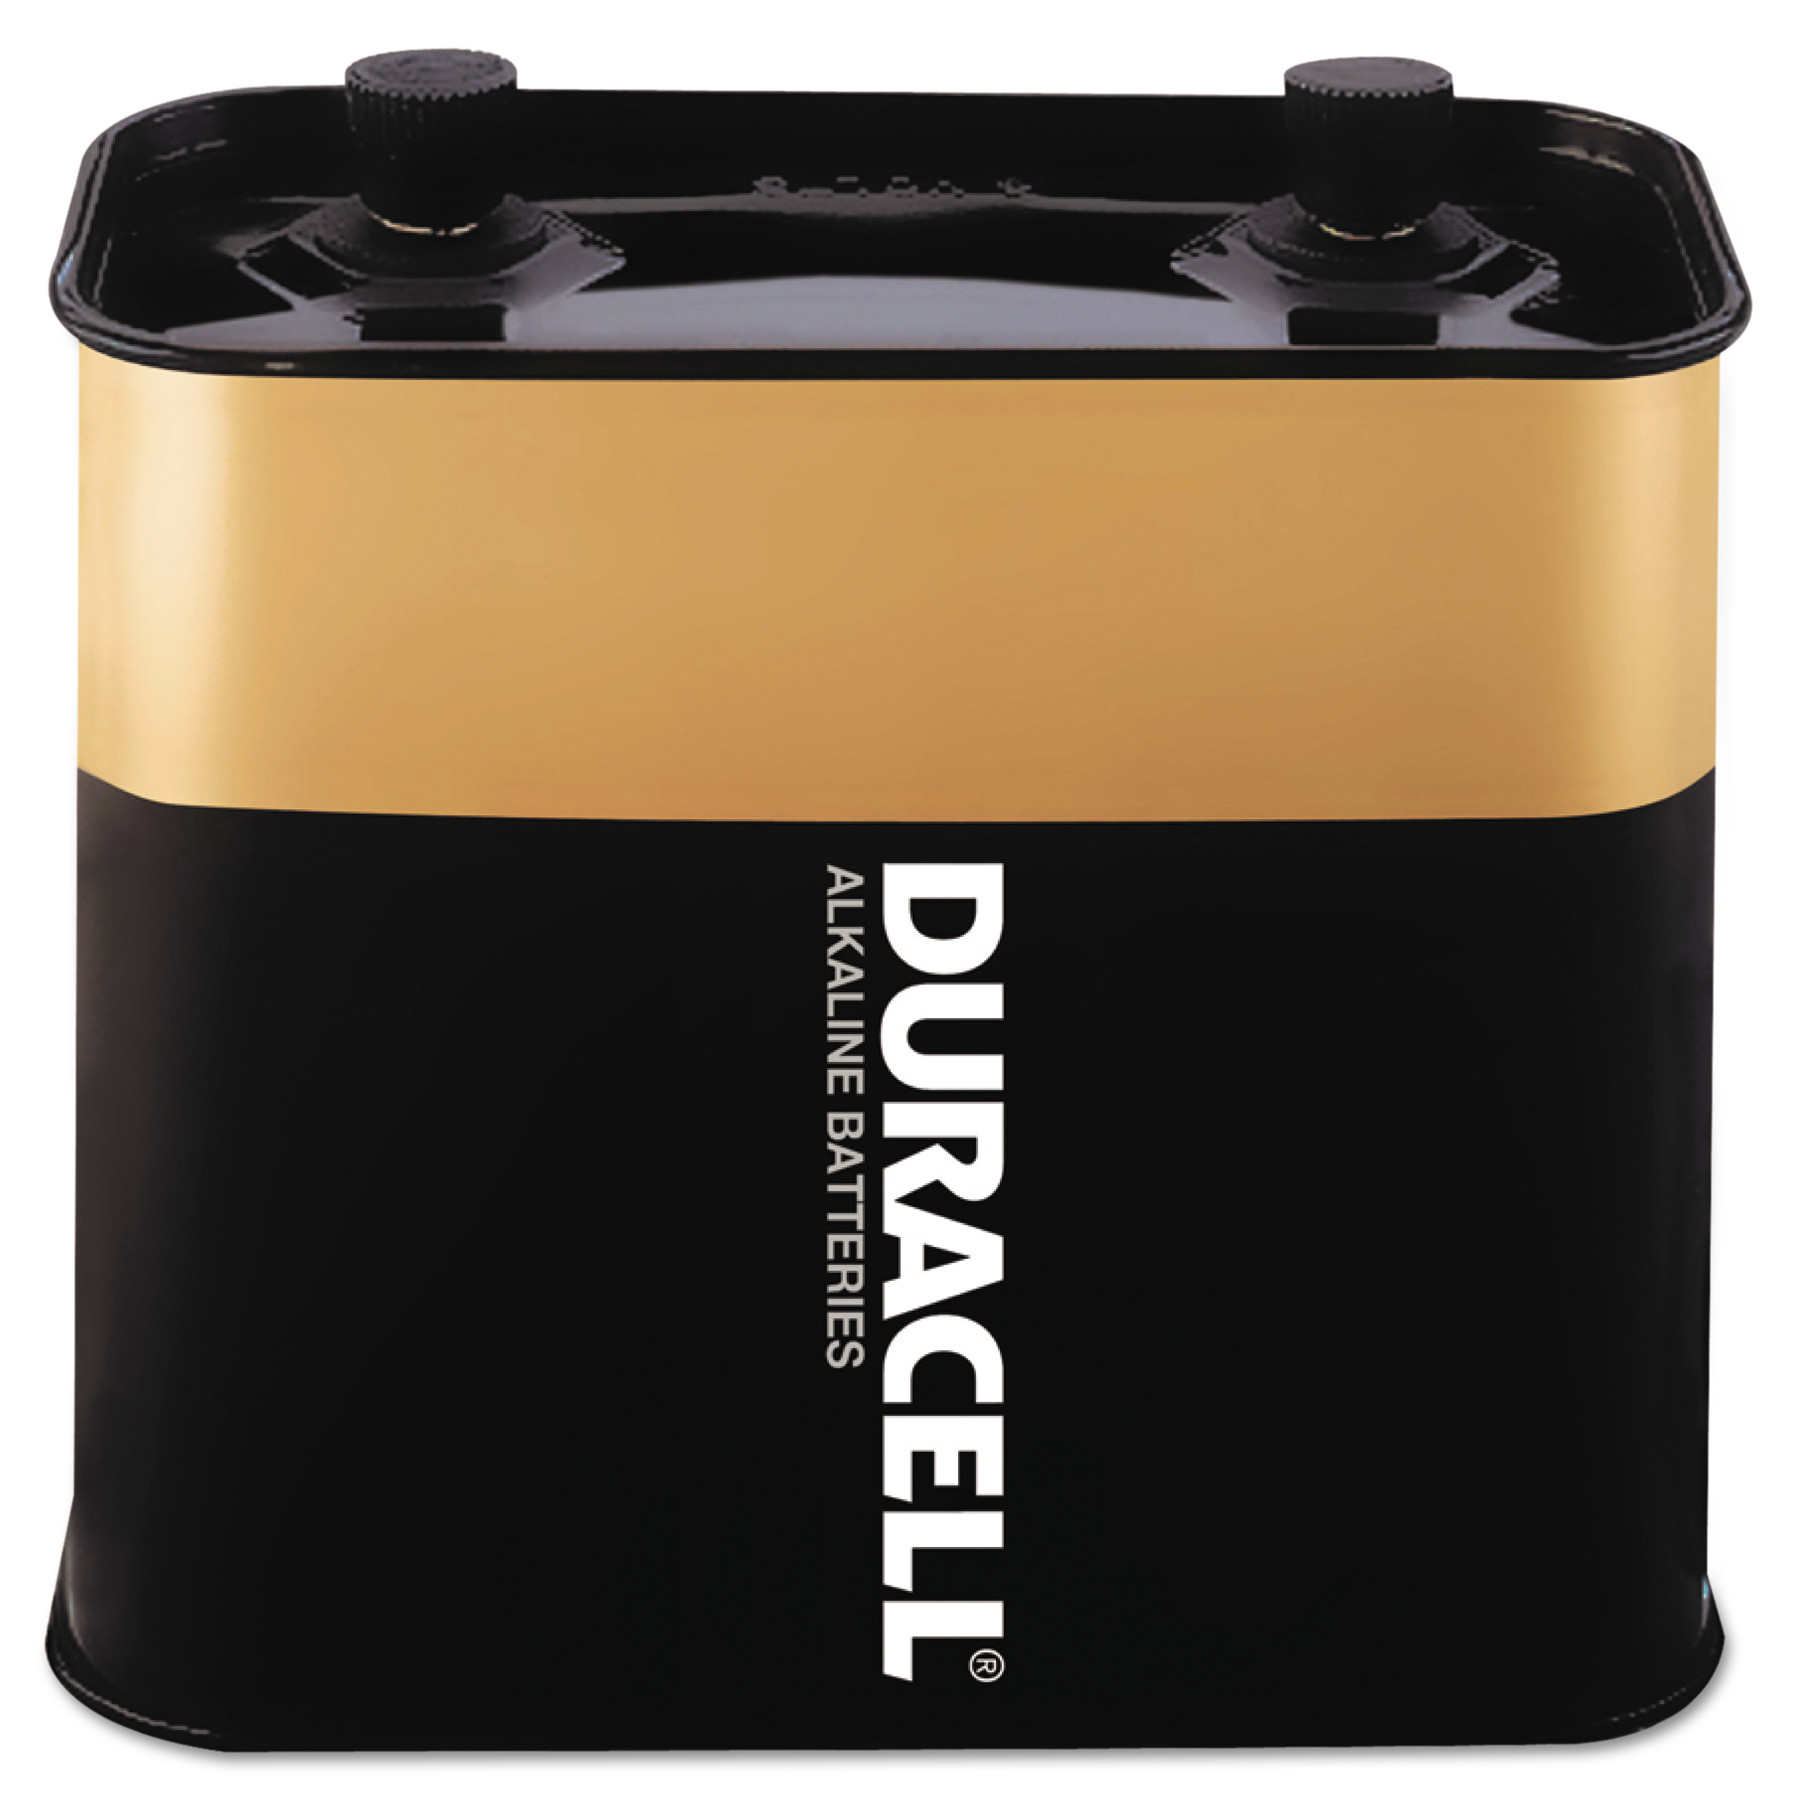 Duracell Alkaline Lantern Battery, 6 Volt, Screw-Top, 1/EA